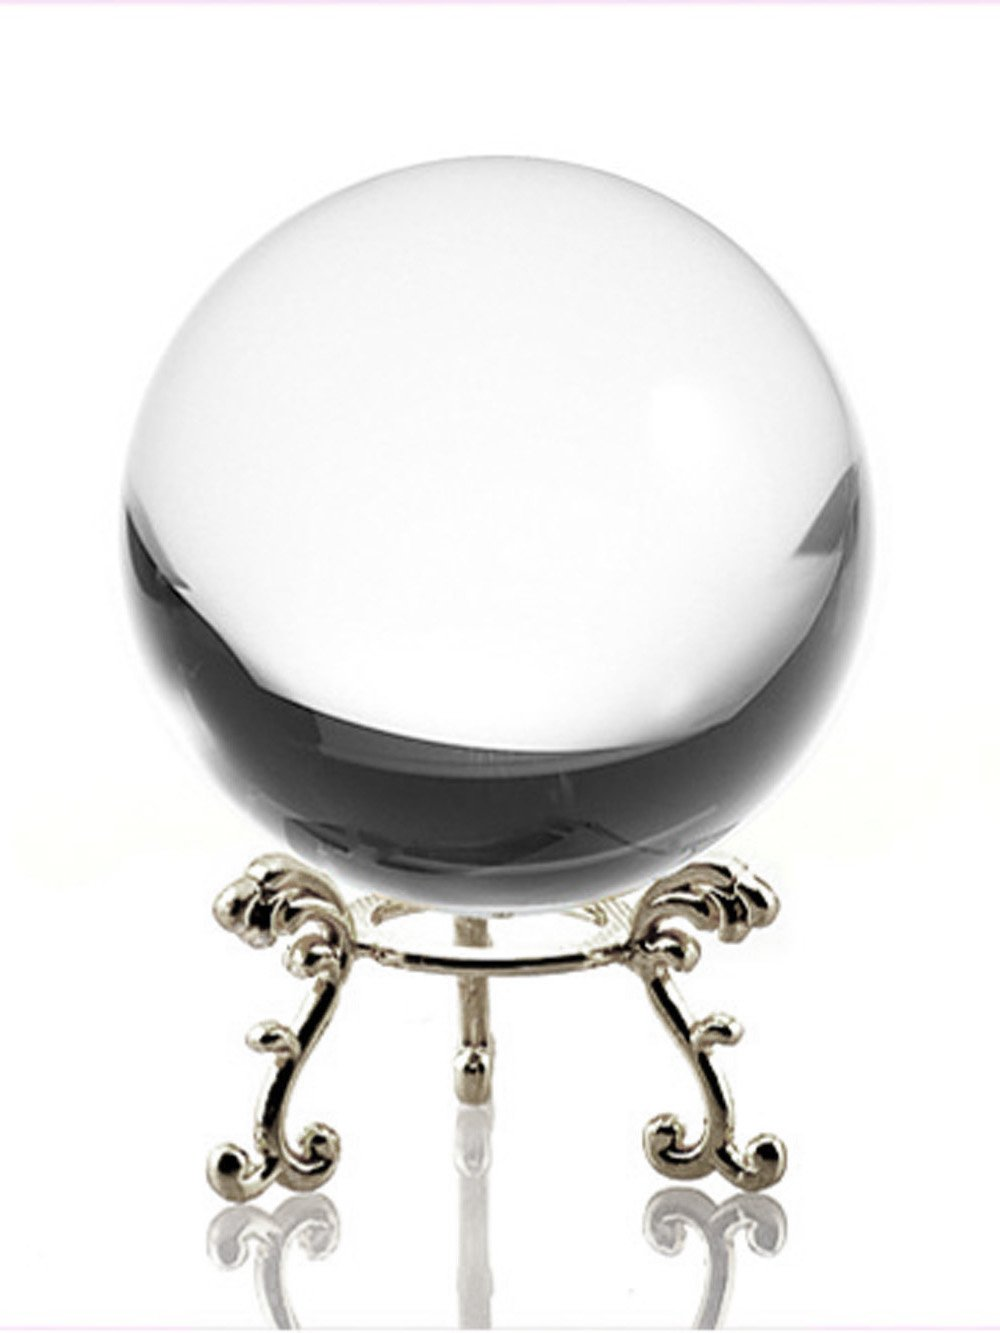 Clear quartz crystal ball 40mm witch stand Sale due to under feet stand